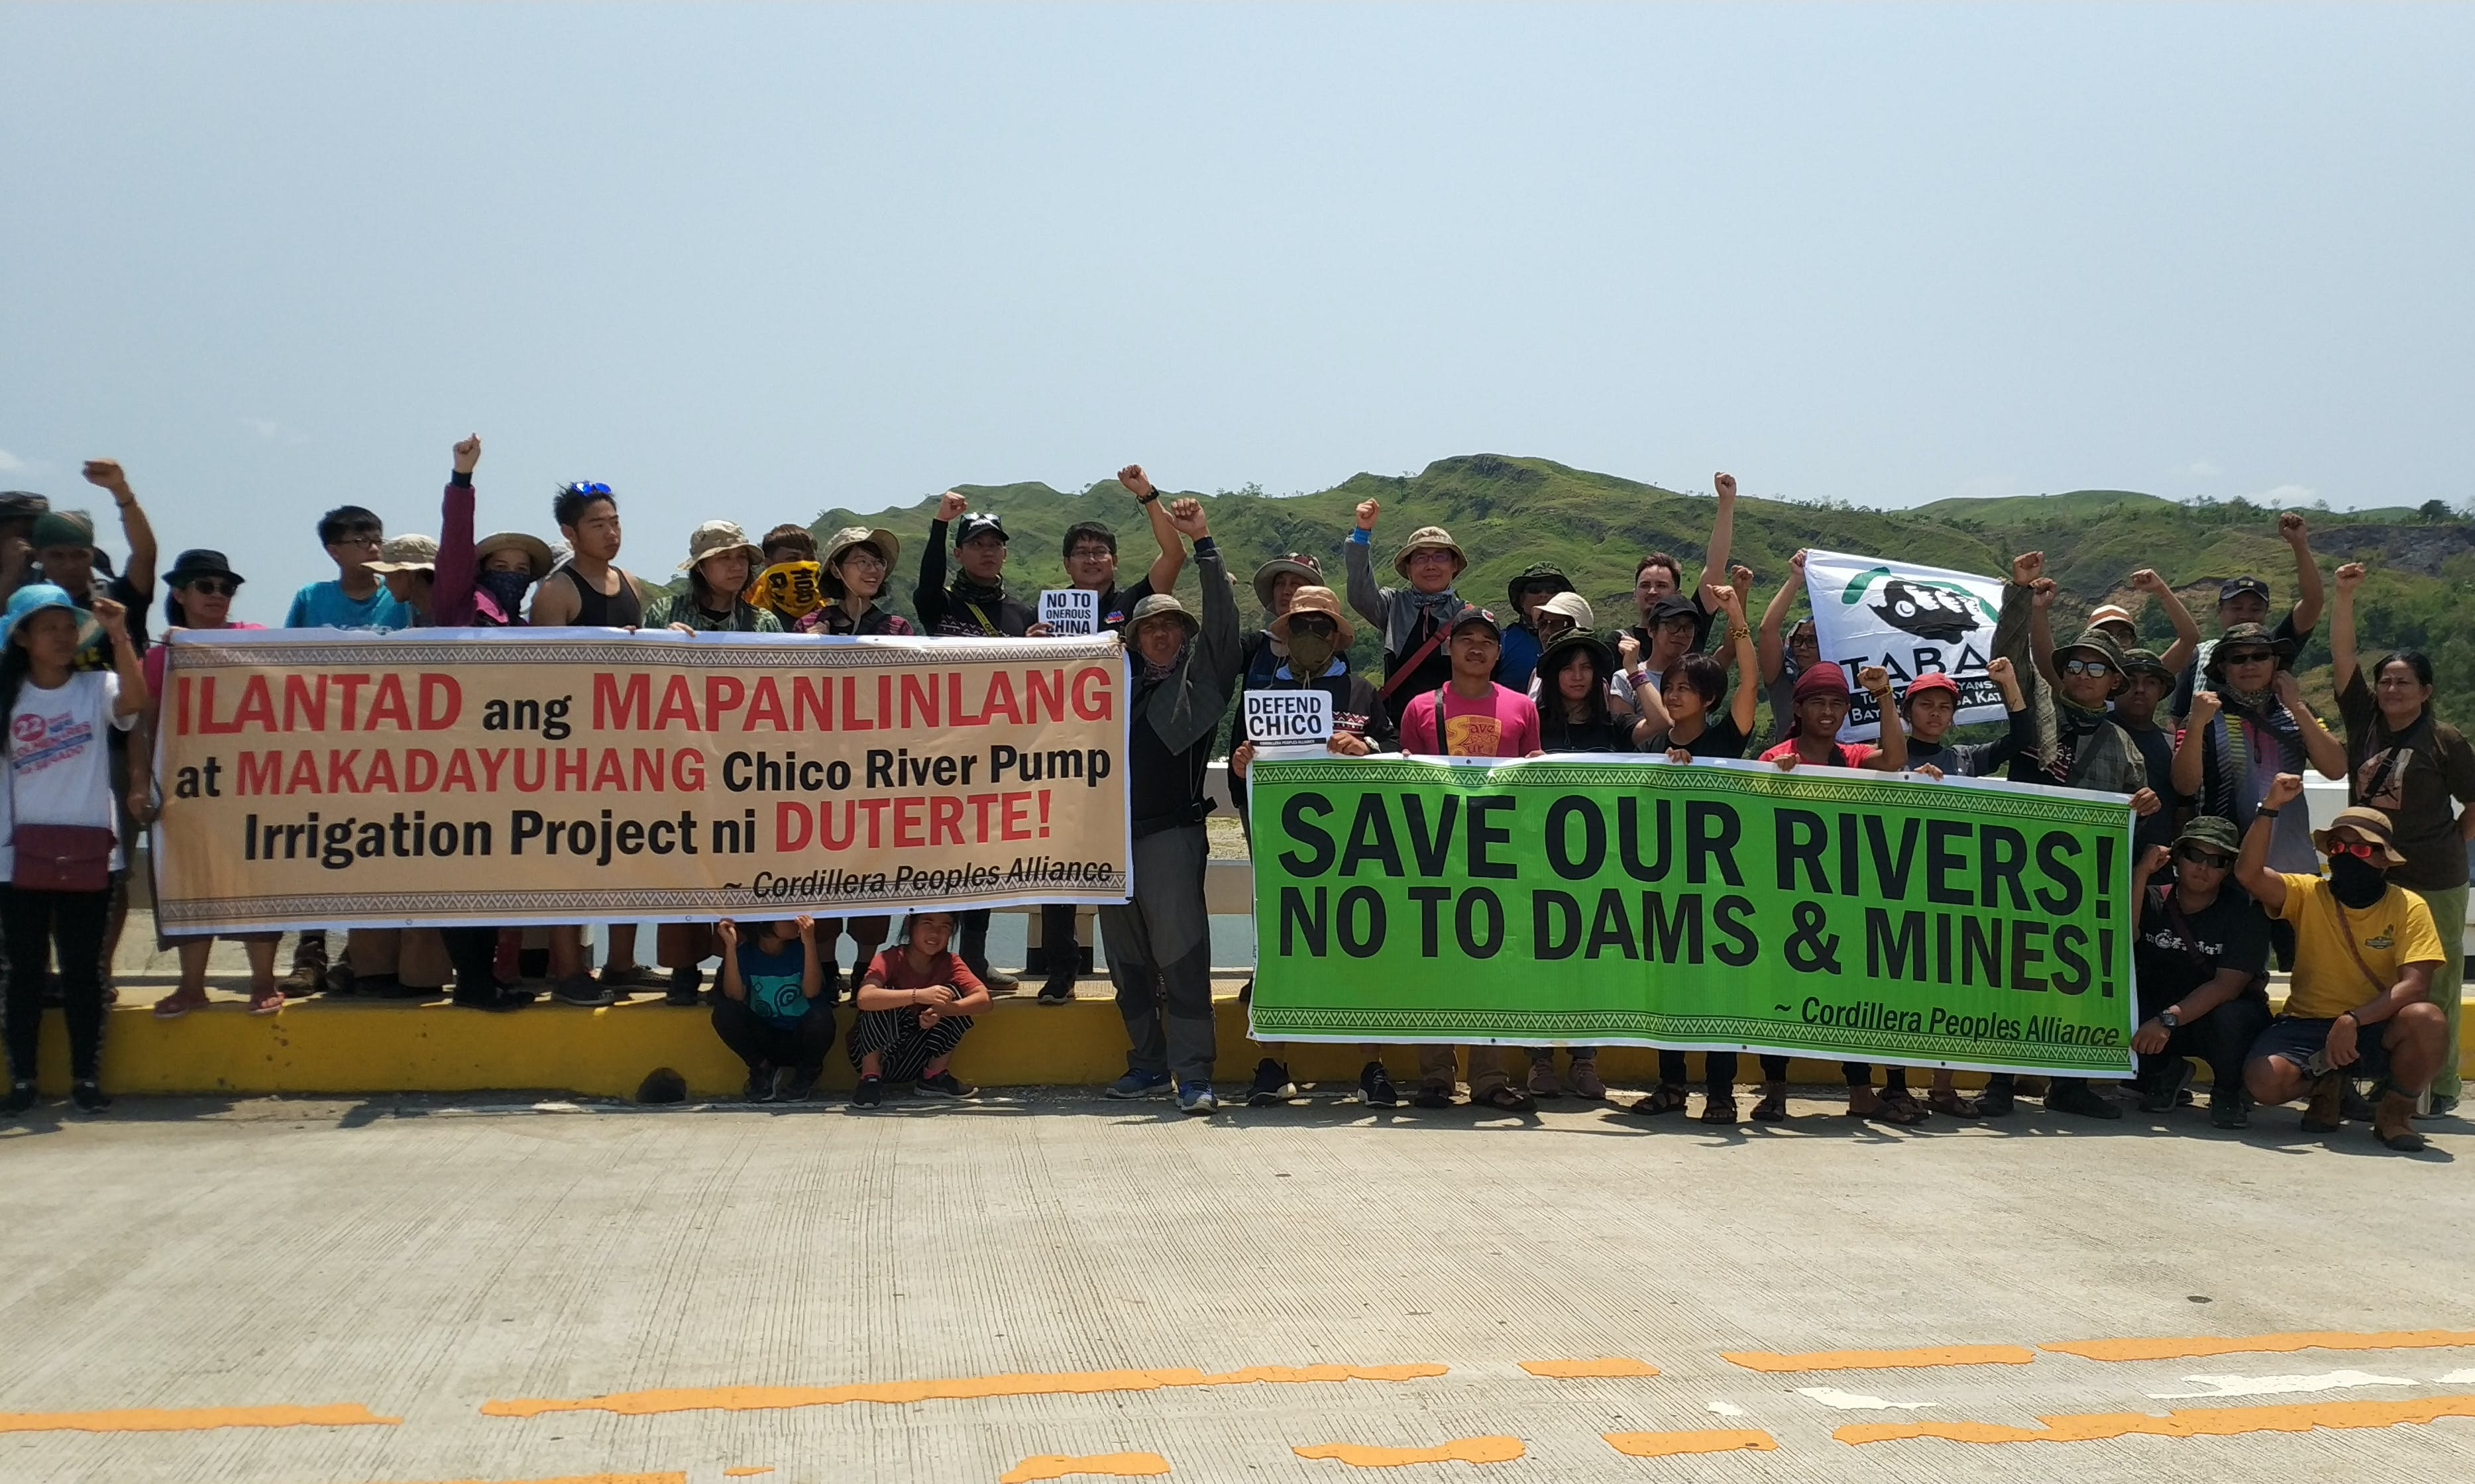 Taiwan and Philippines Indigenous Groups Find Solidarity in Opposing China